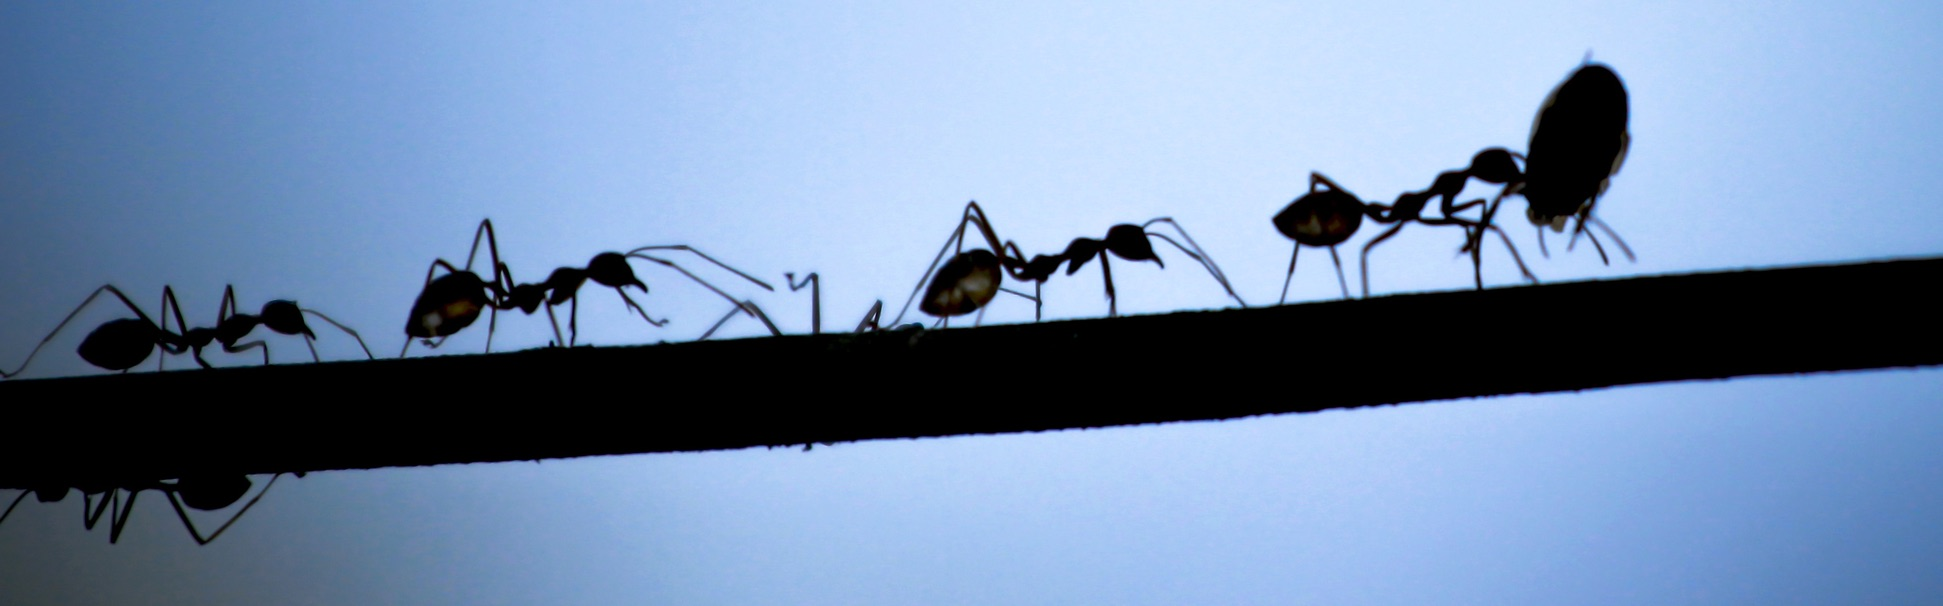 Collective efficiency: Mobility researchers can learn from ants